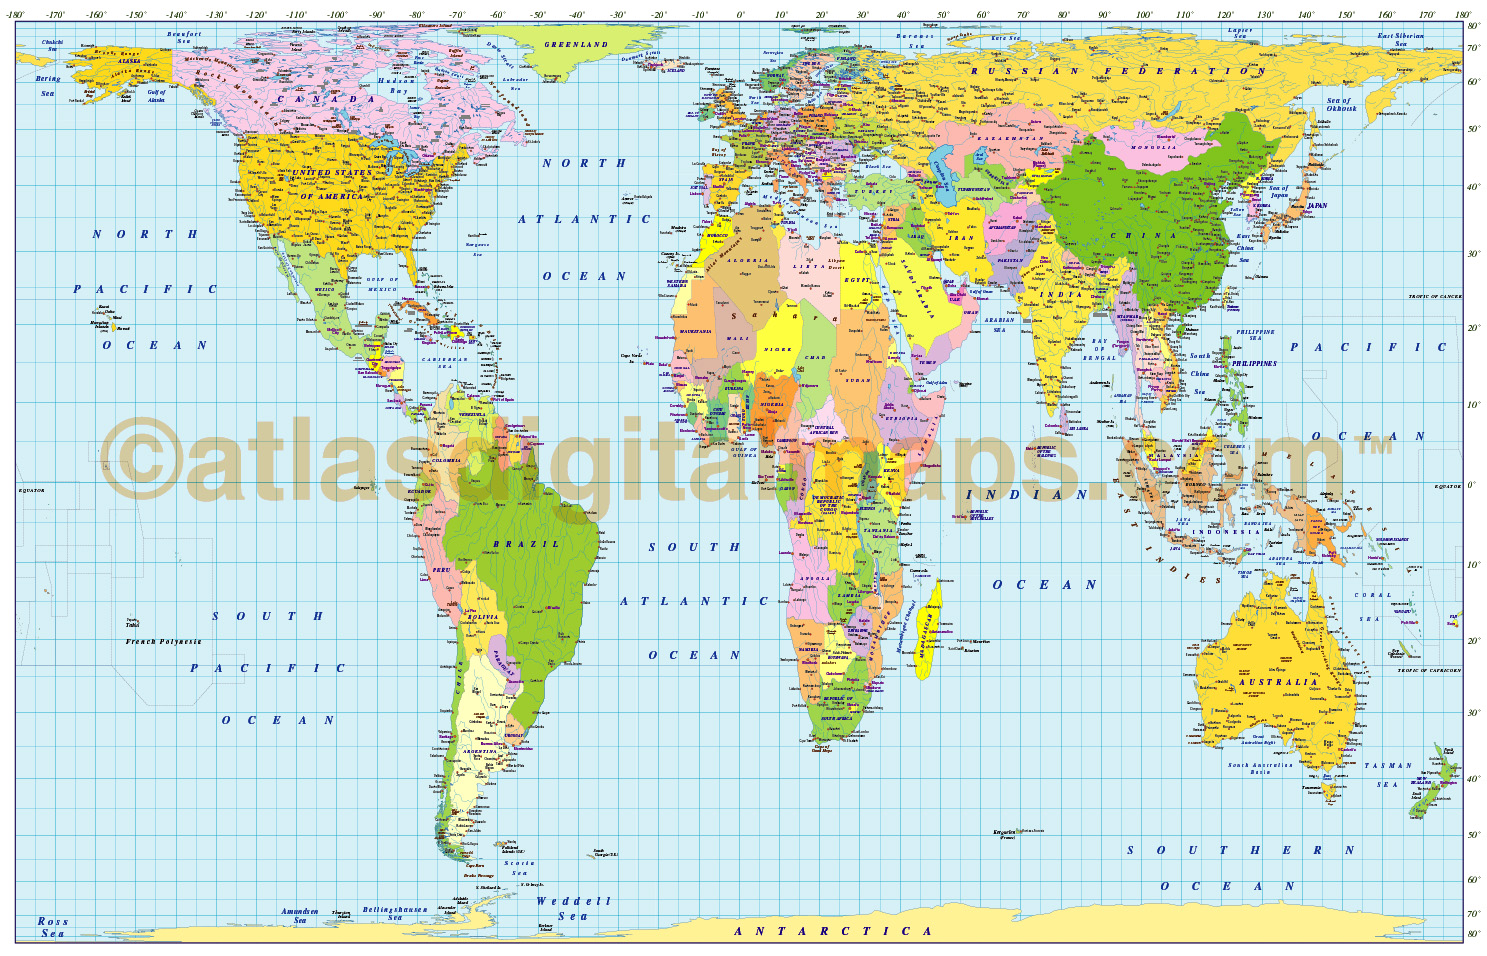 medium scale digital vector world map in gall orthographic projection illust